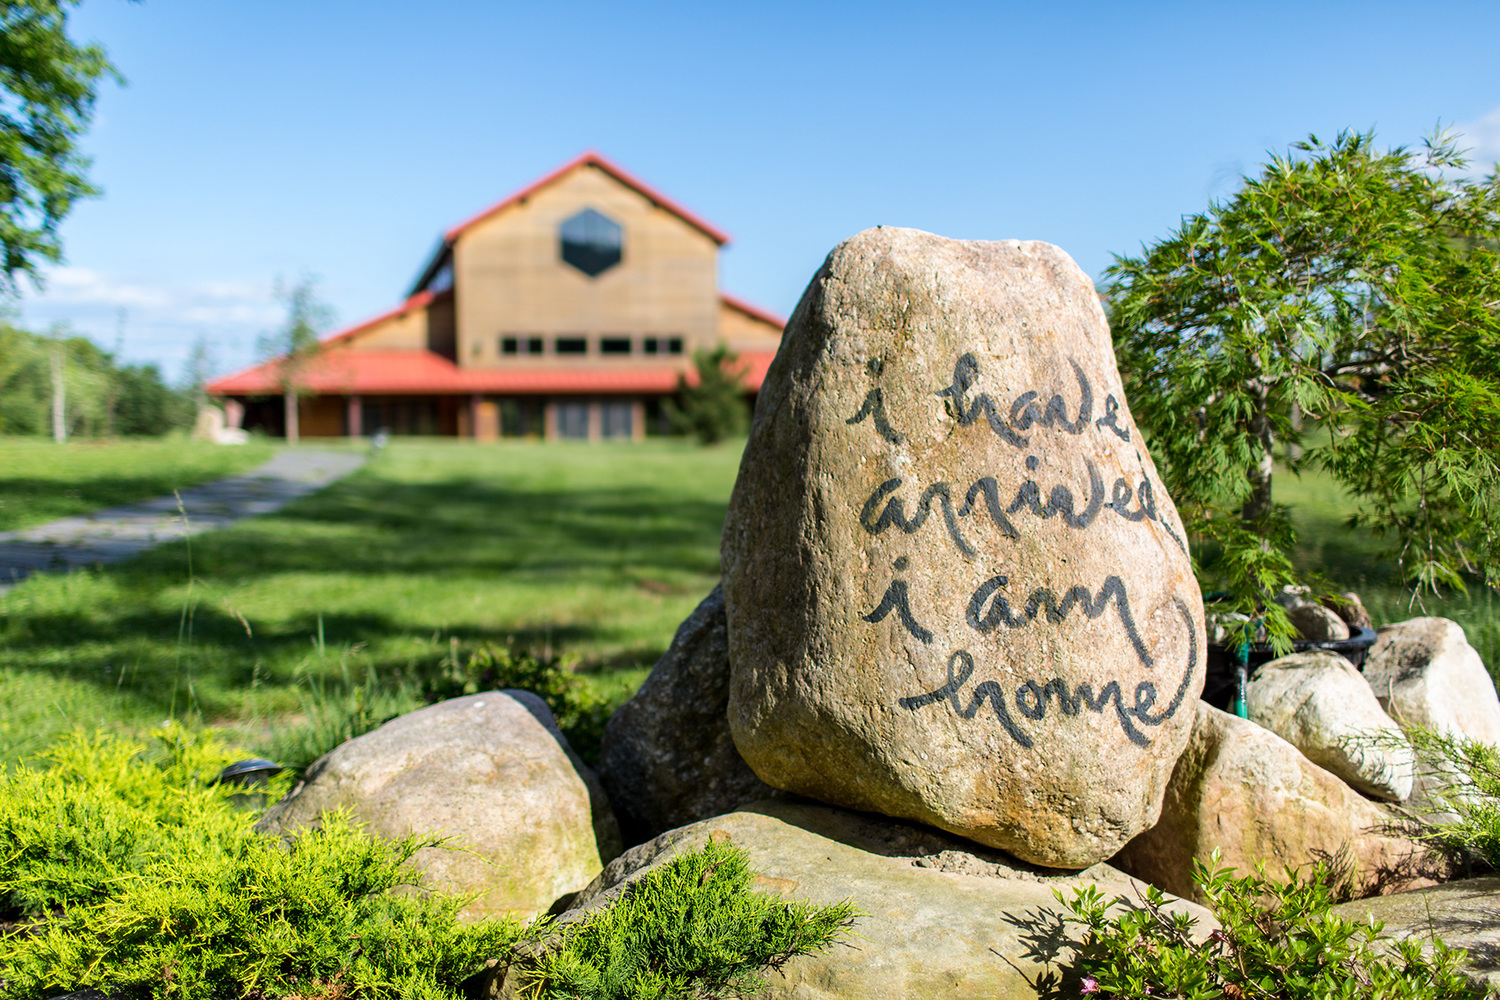 Blue Cliff Monastery - Nestled on 80 acres of beautiful woodland in the Shawangunk Mountains, Blue Cliff is located south of the Catskills and just two hours from New York City.Learn More